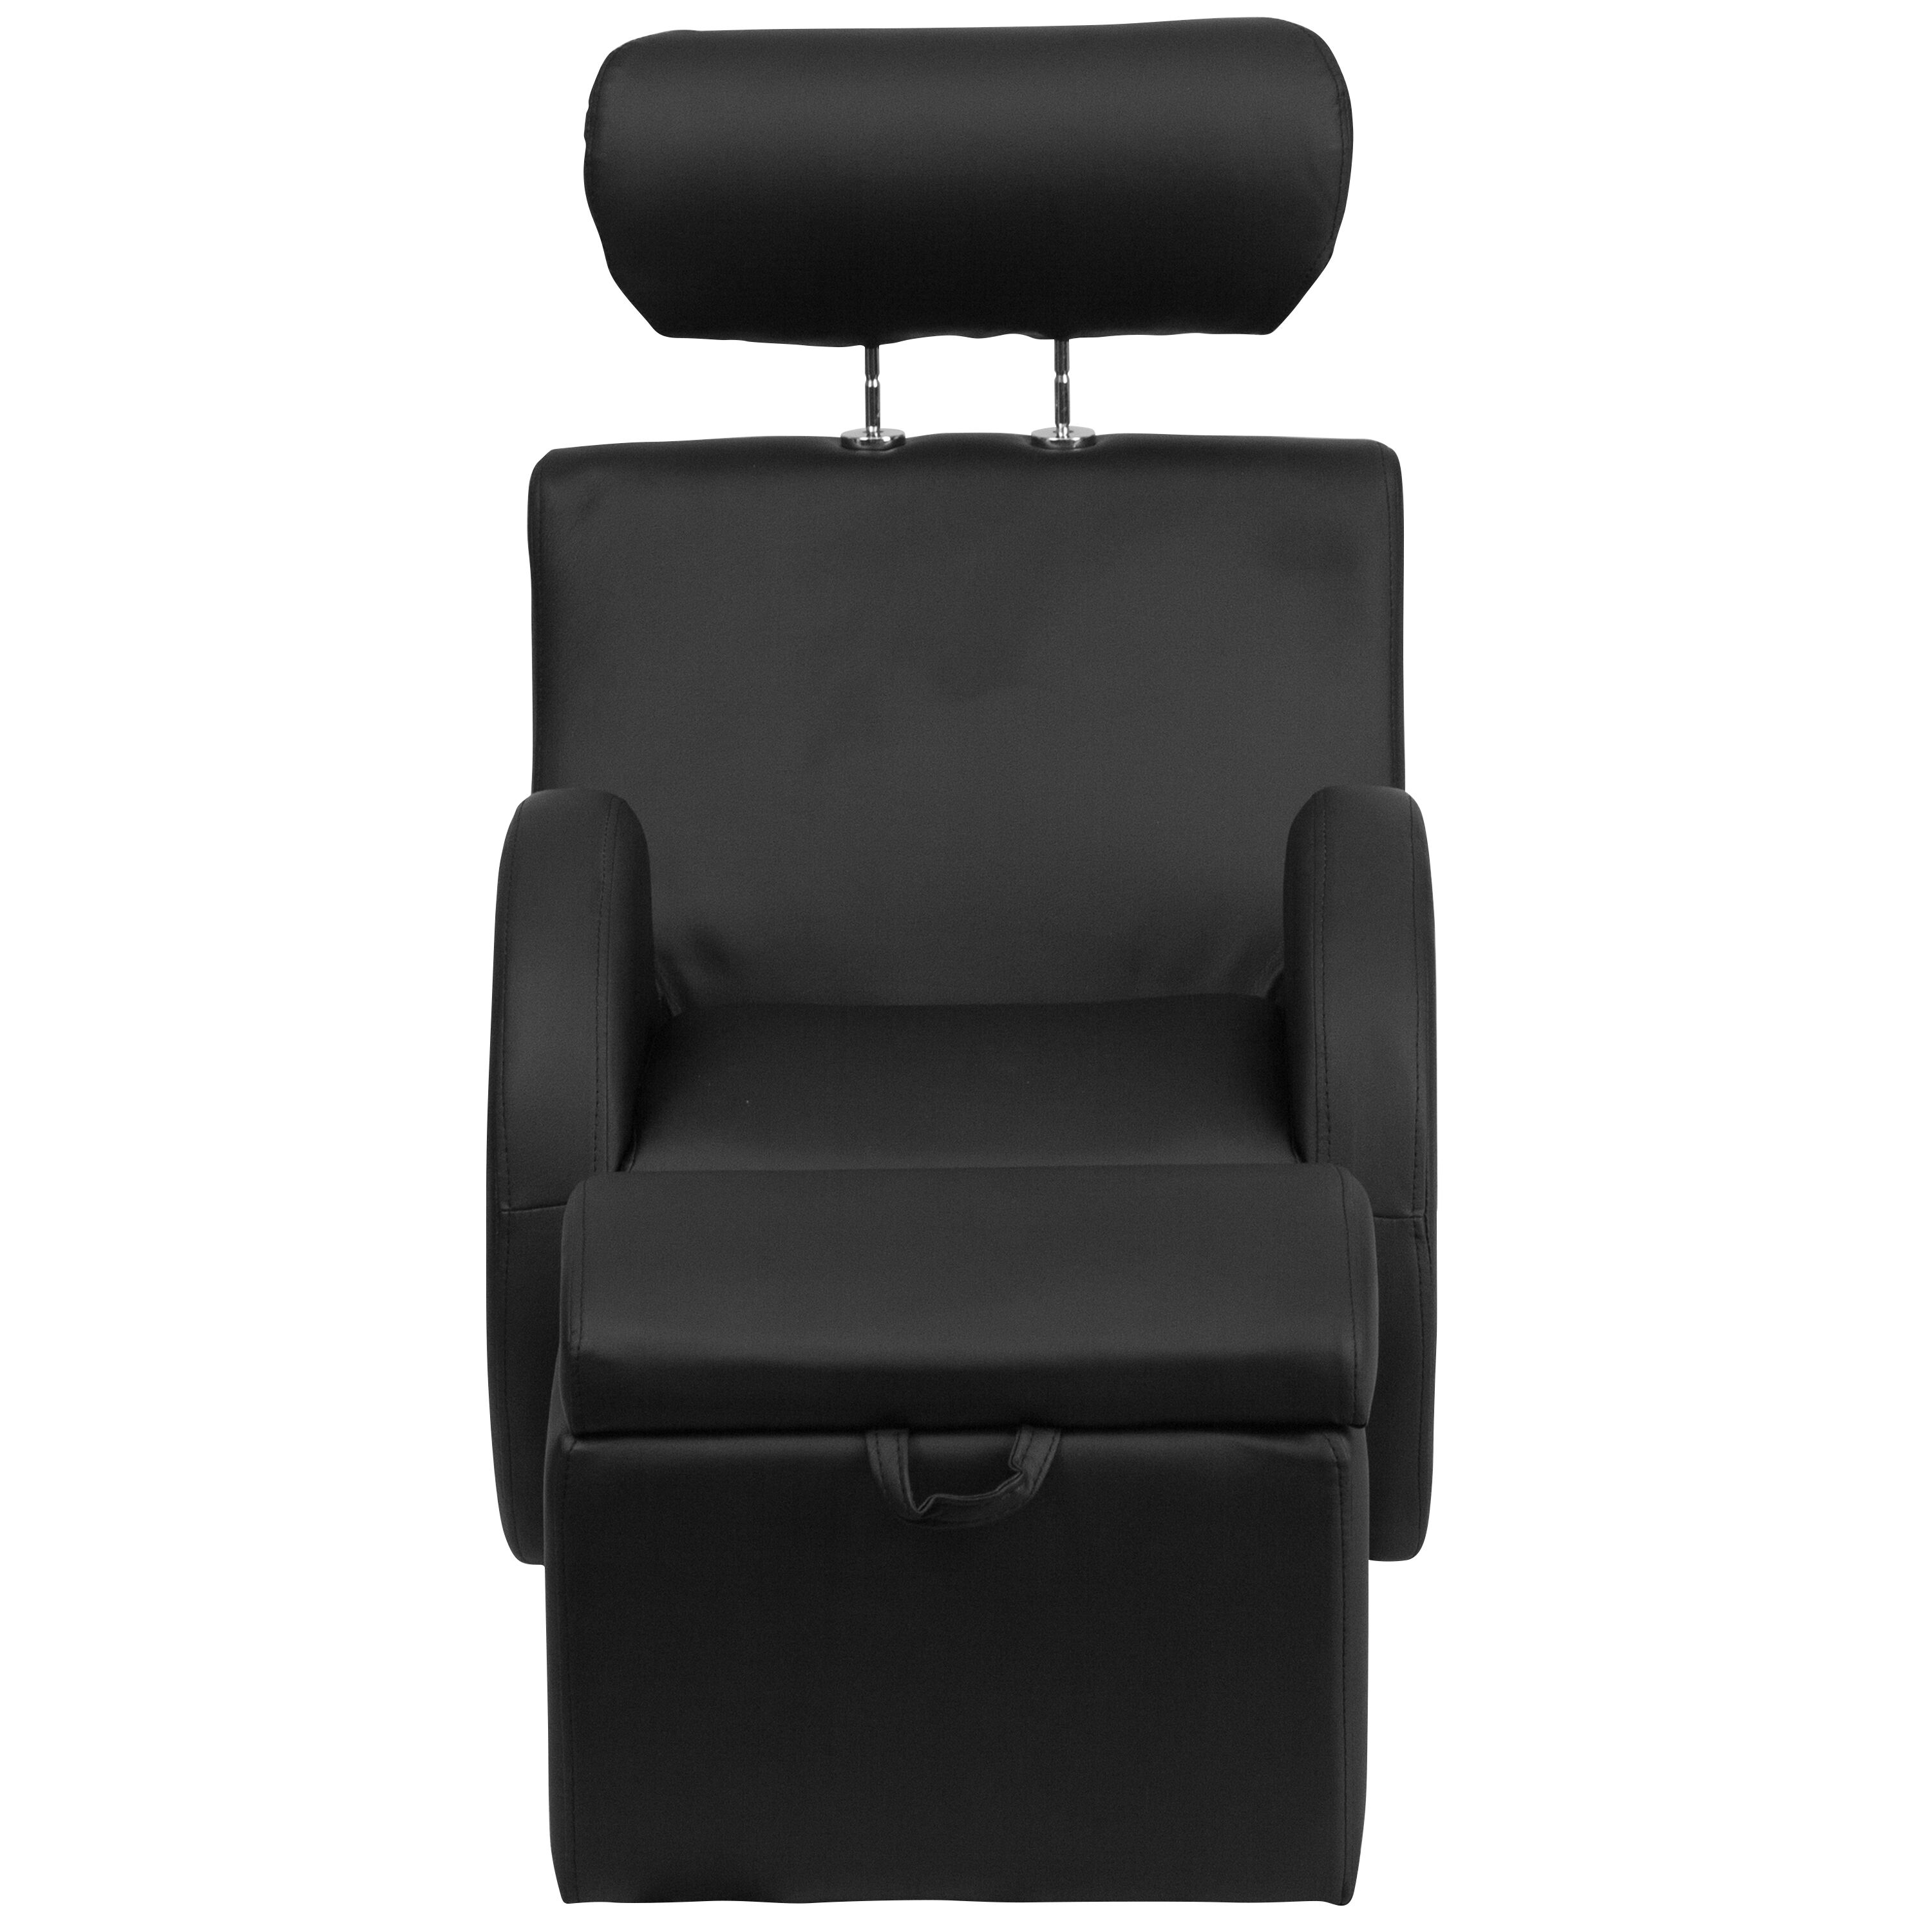 Our HERCULES Series Black Vinyl Rocking Chair With Storage Ottoman Is On  Sale Now.